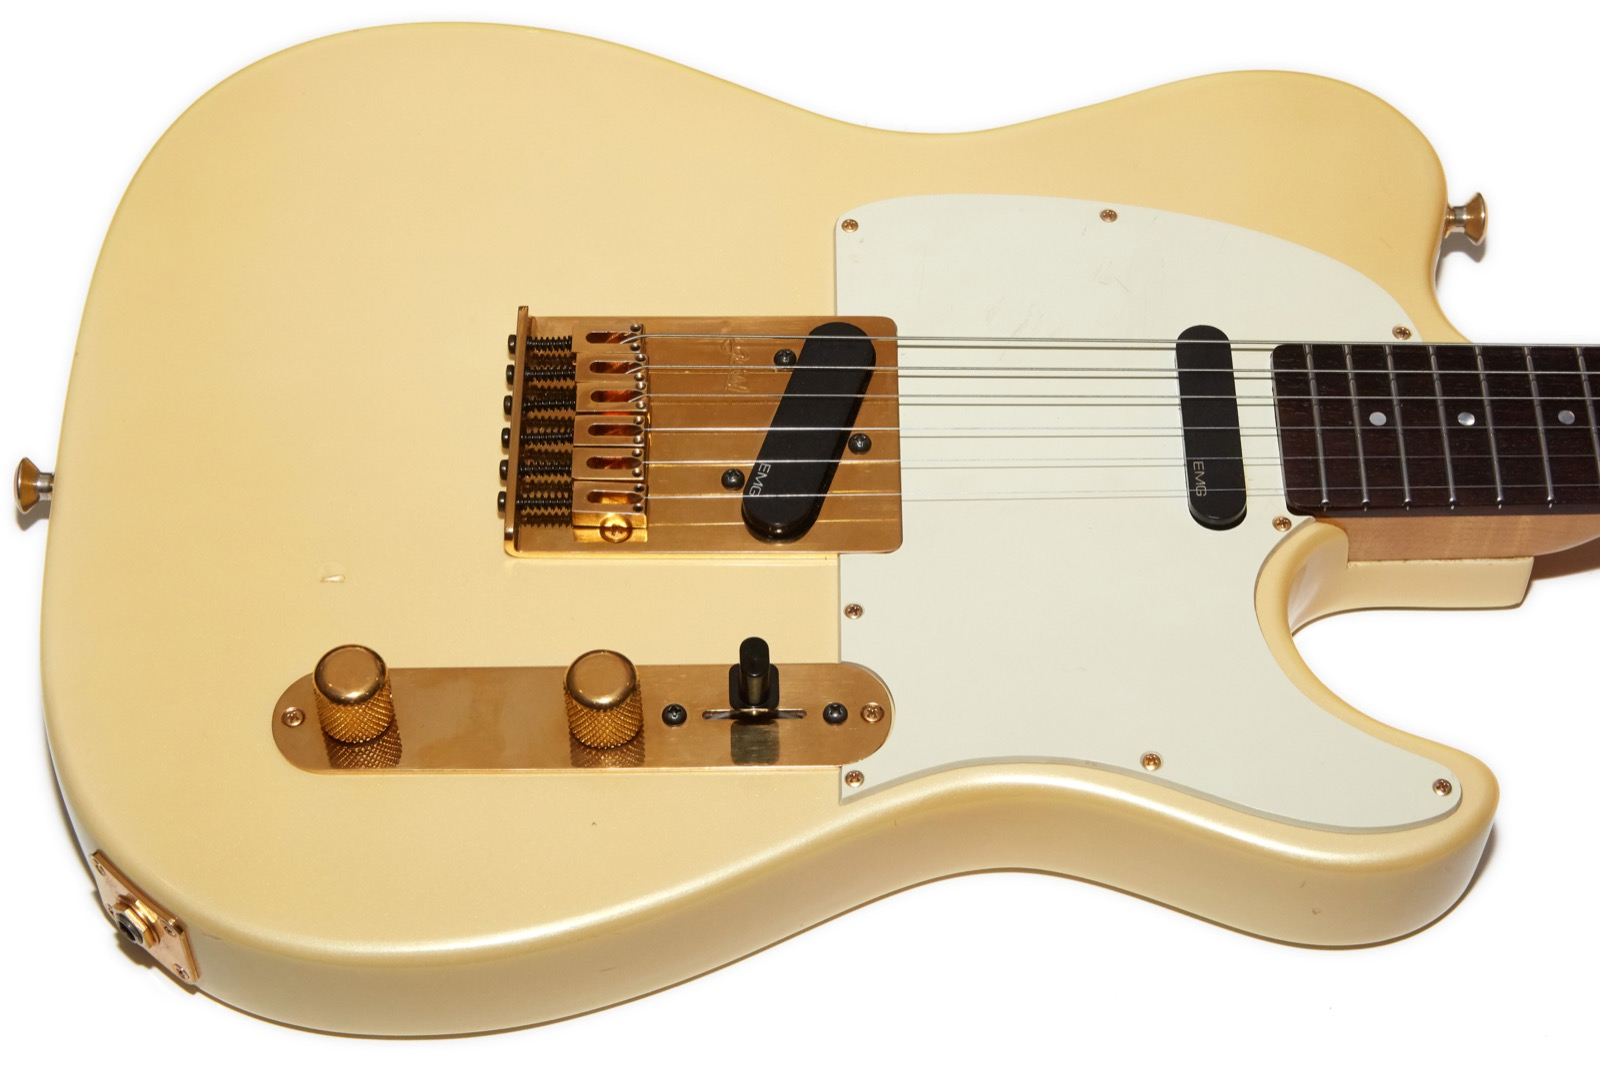 Guild T 250 The Not Roy Buchanan Tele Gads Ramblings Emg Telecaster Wiring Diagram I Am One Of Those Apparently Rare Guitarists Who Doesnt Like Telecasters Dont Get Me Wrong Appreciate Their Tone And Understand Place In